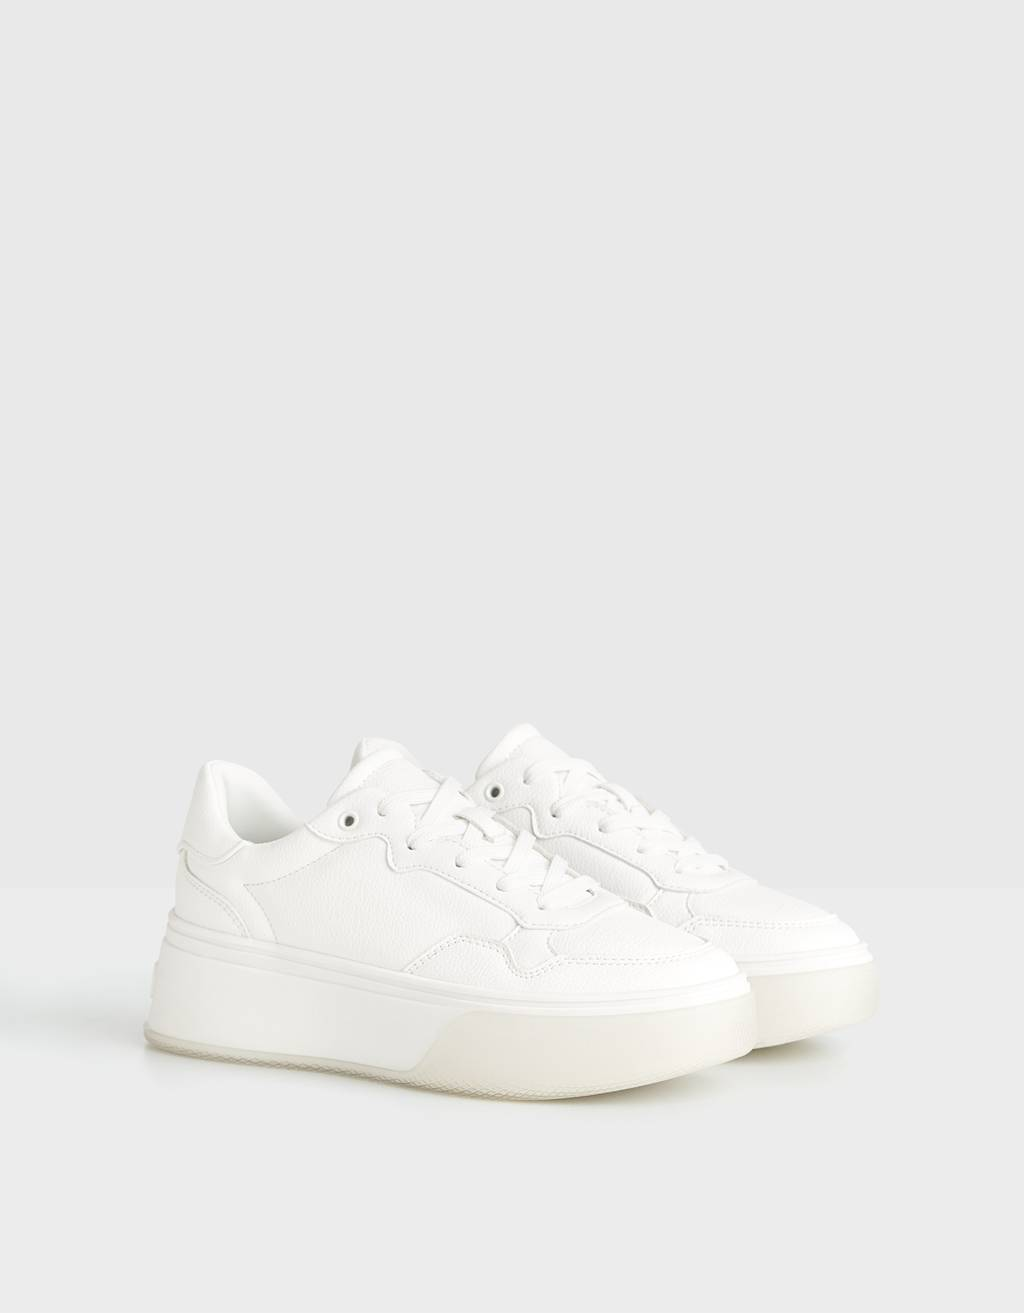 Platform sneakers with translucent sole